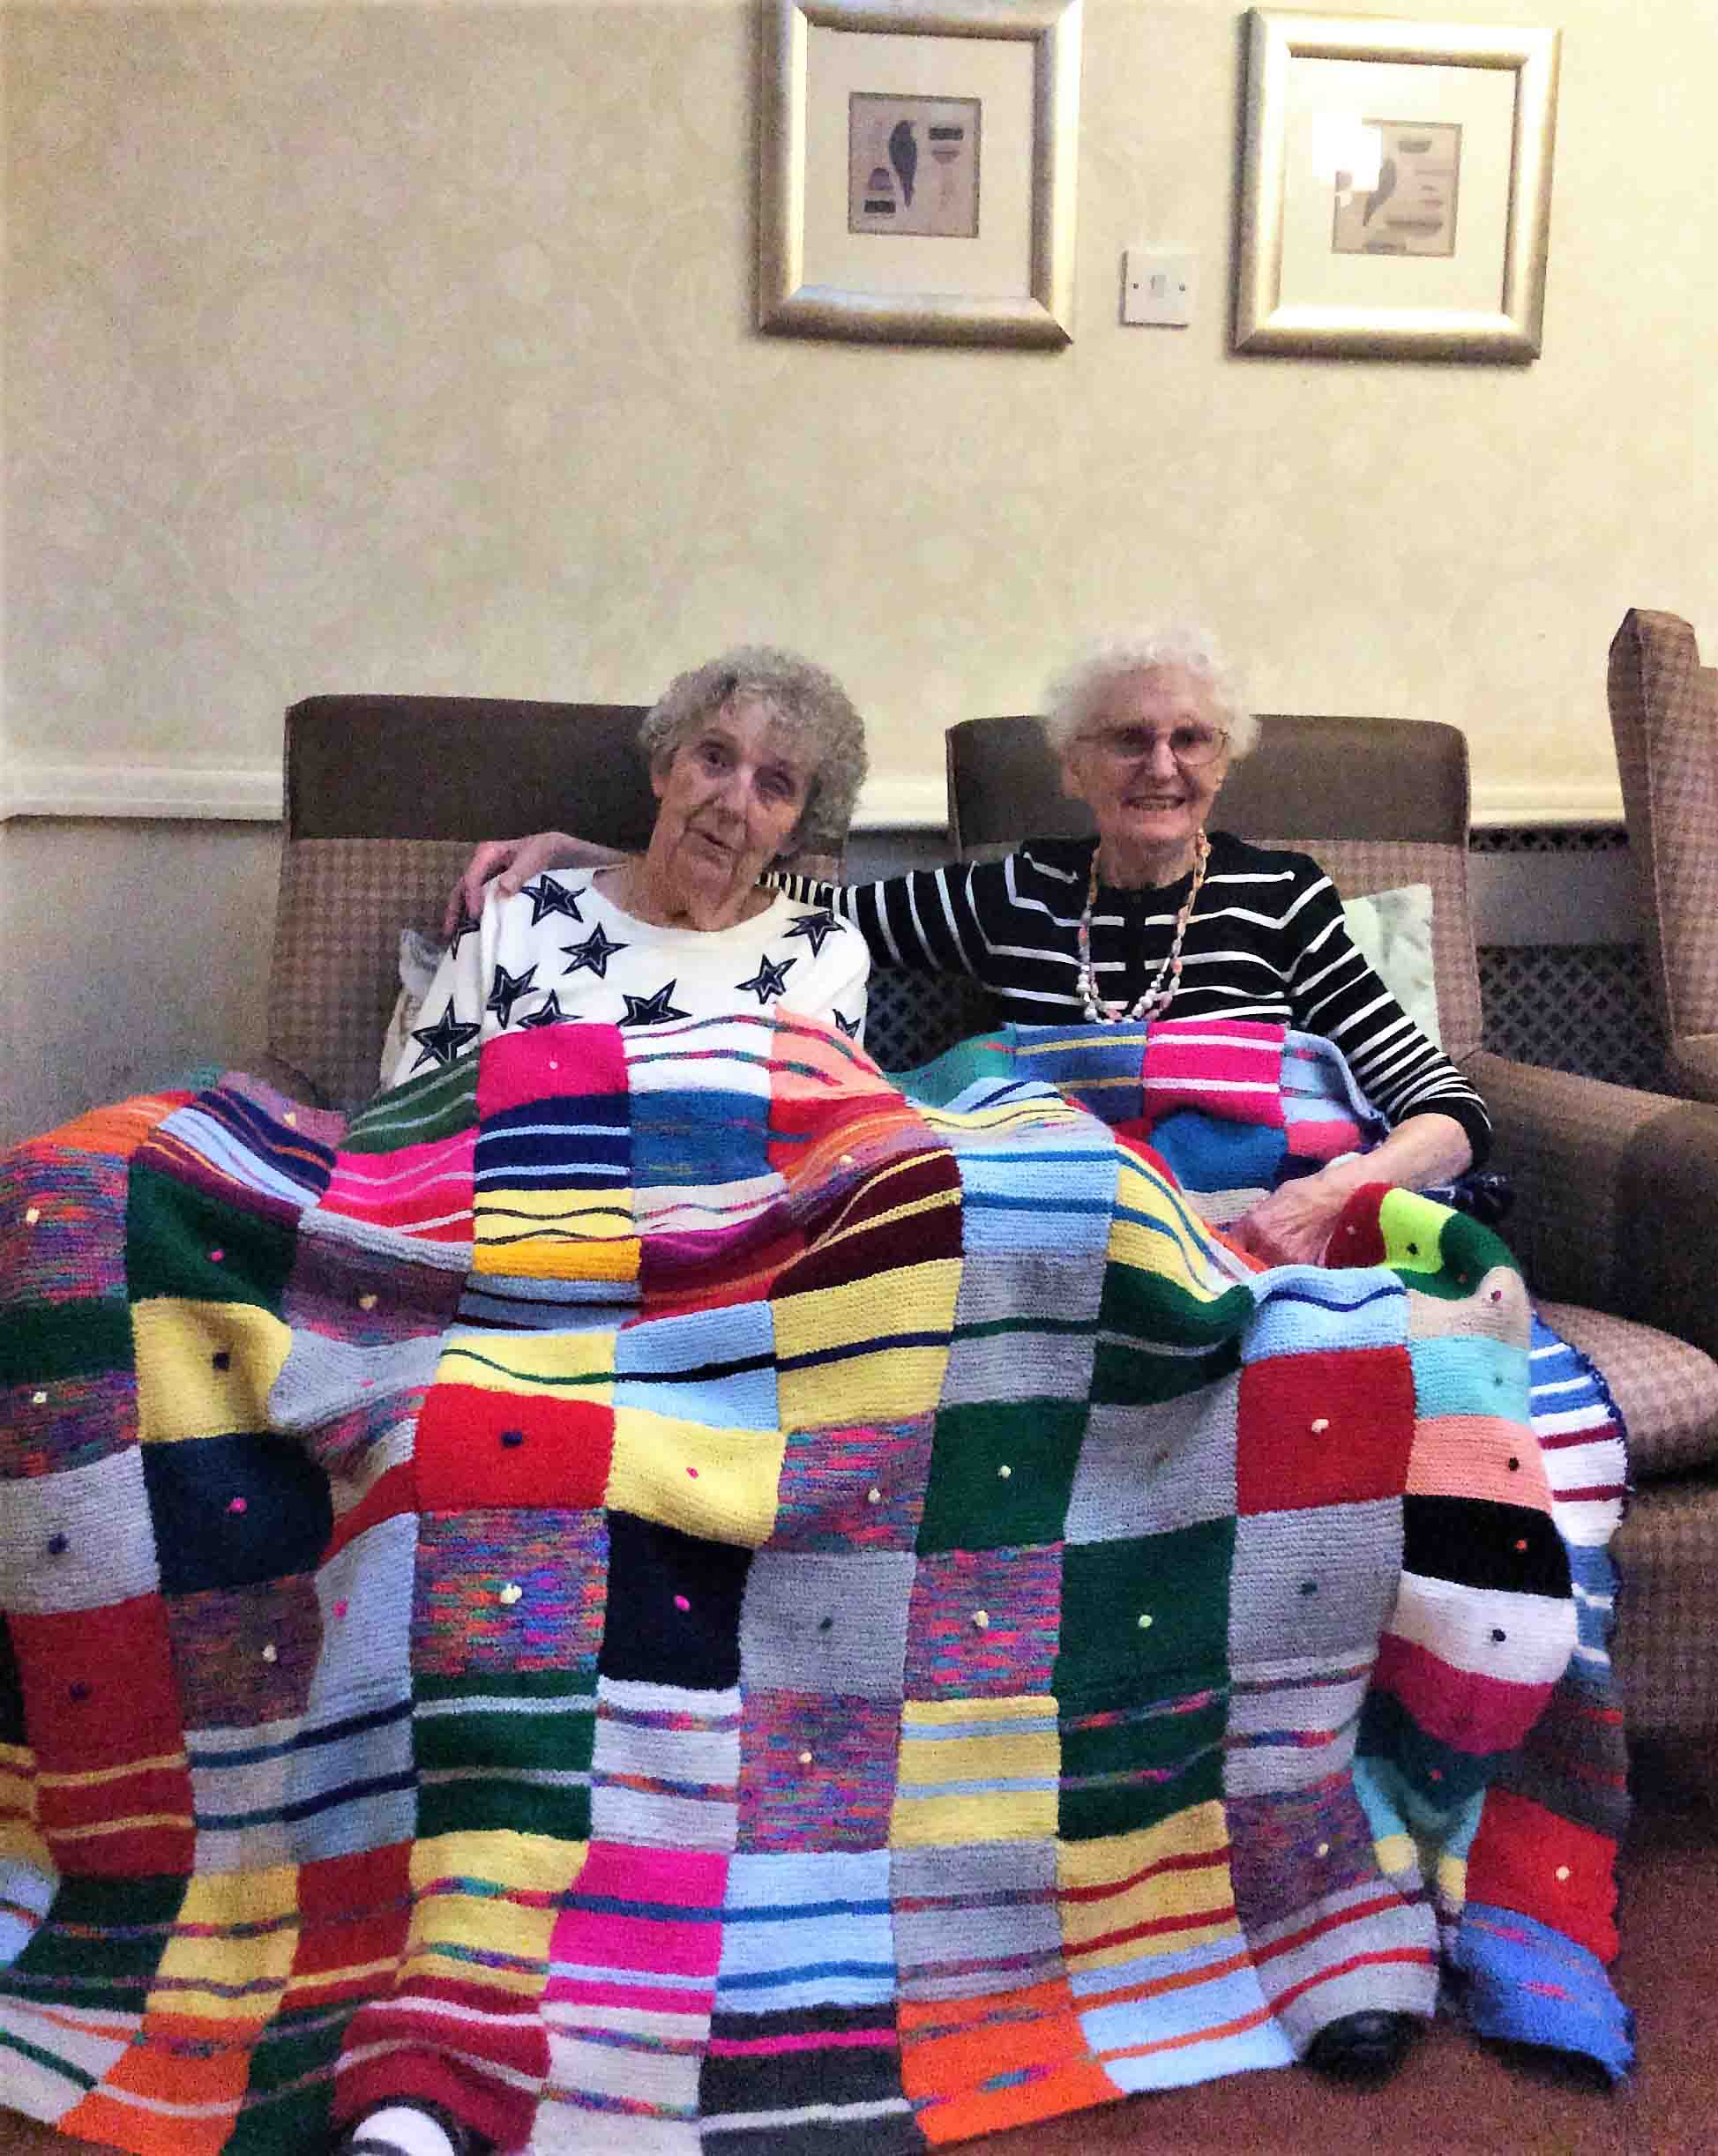 Residents at St. Oswalds House Care Home donate hand-knitted patchwork blanket to local homeless shelter